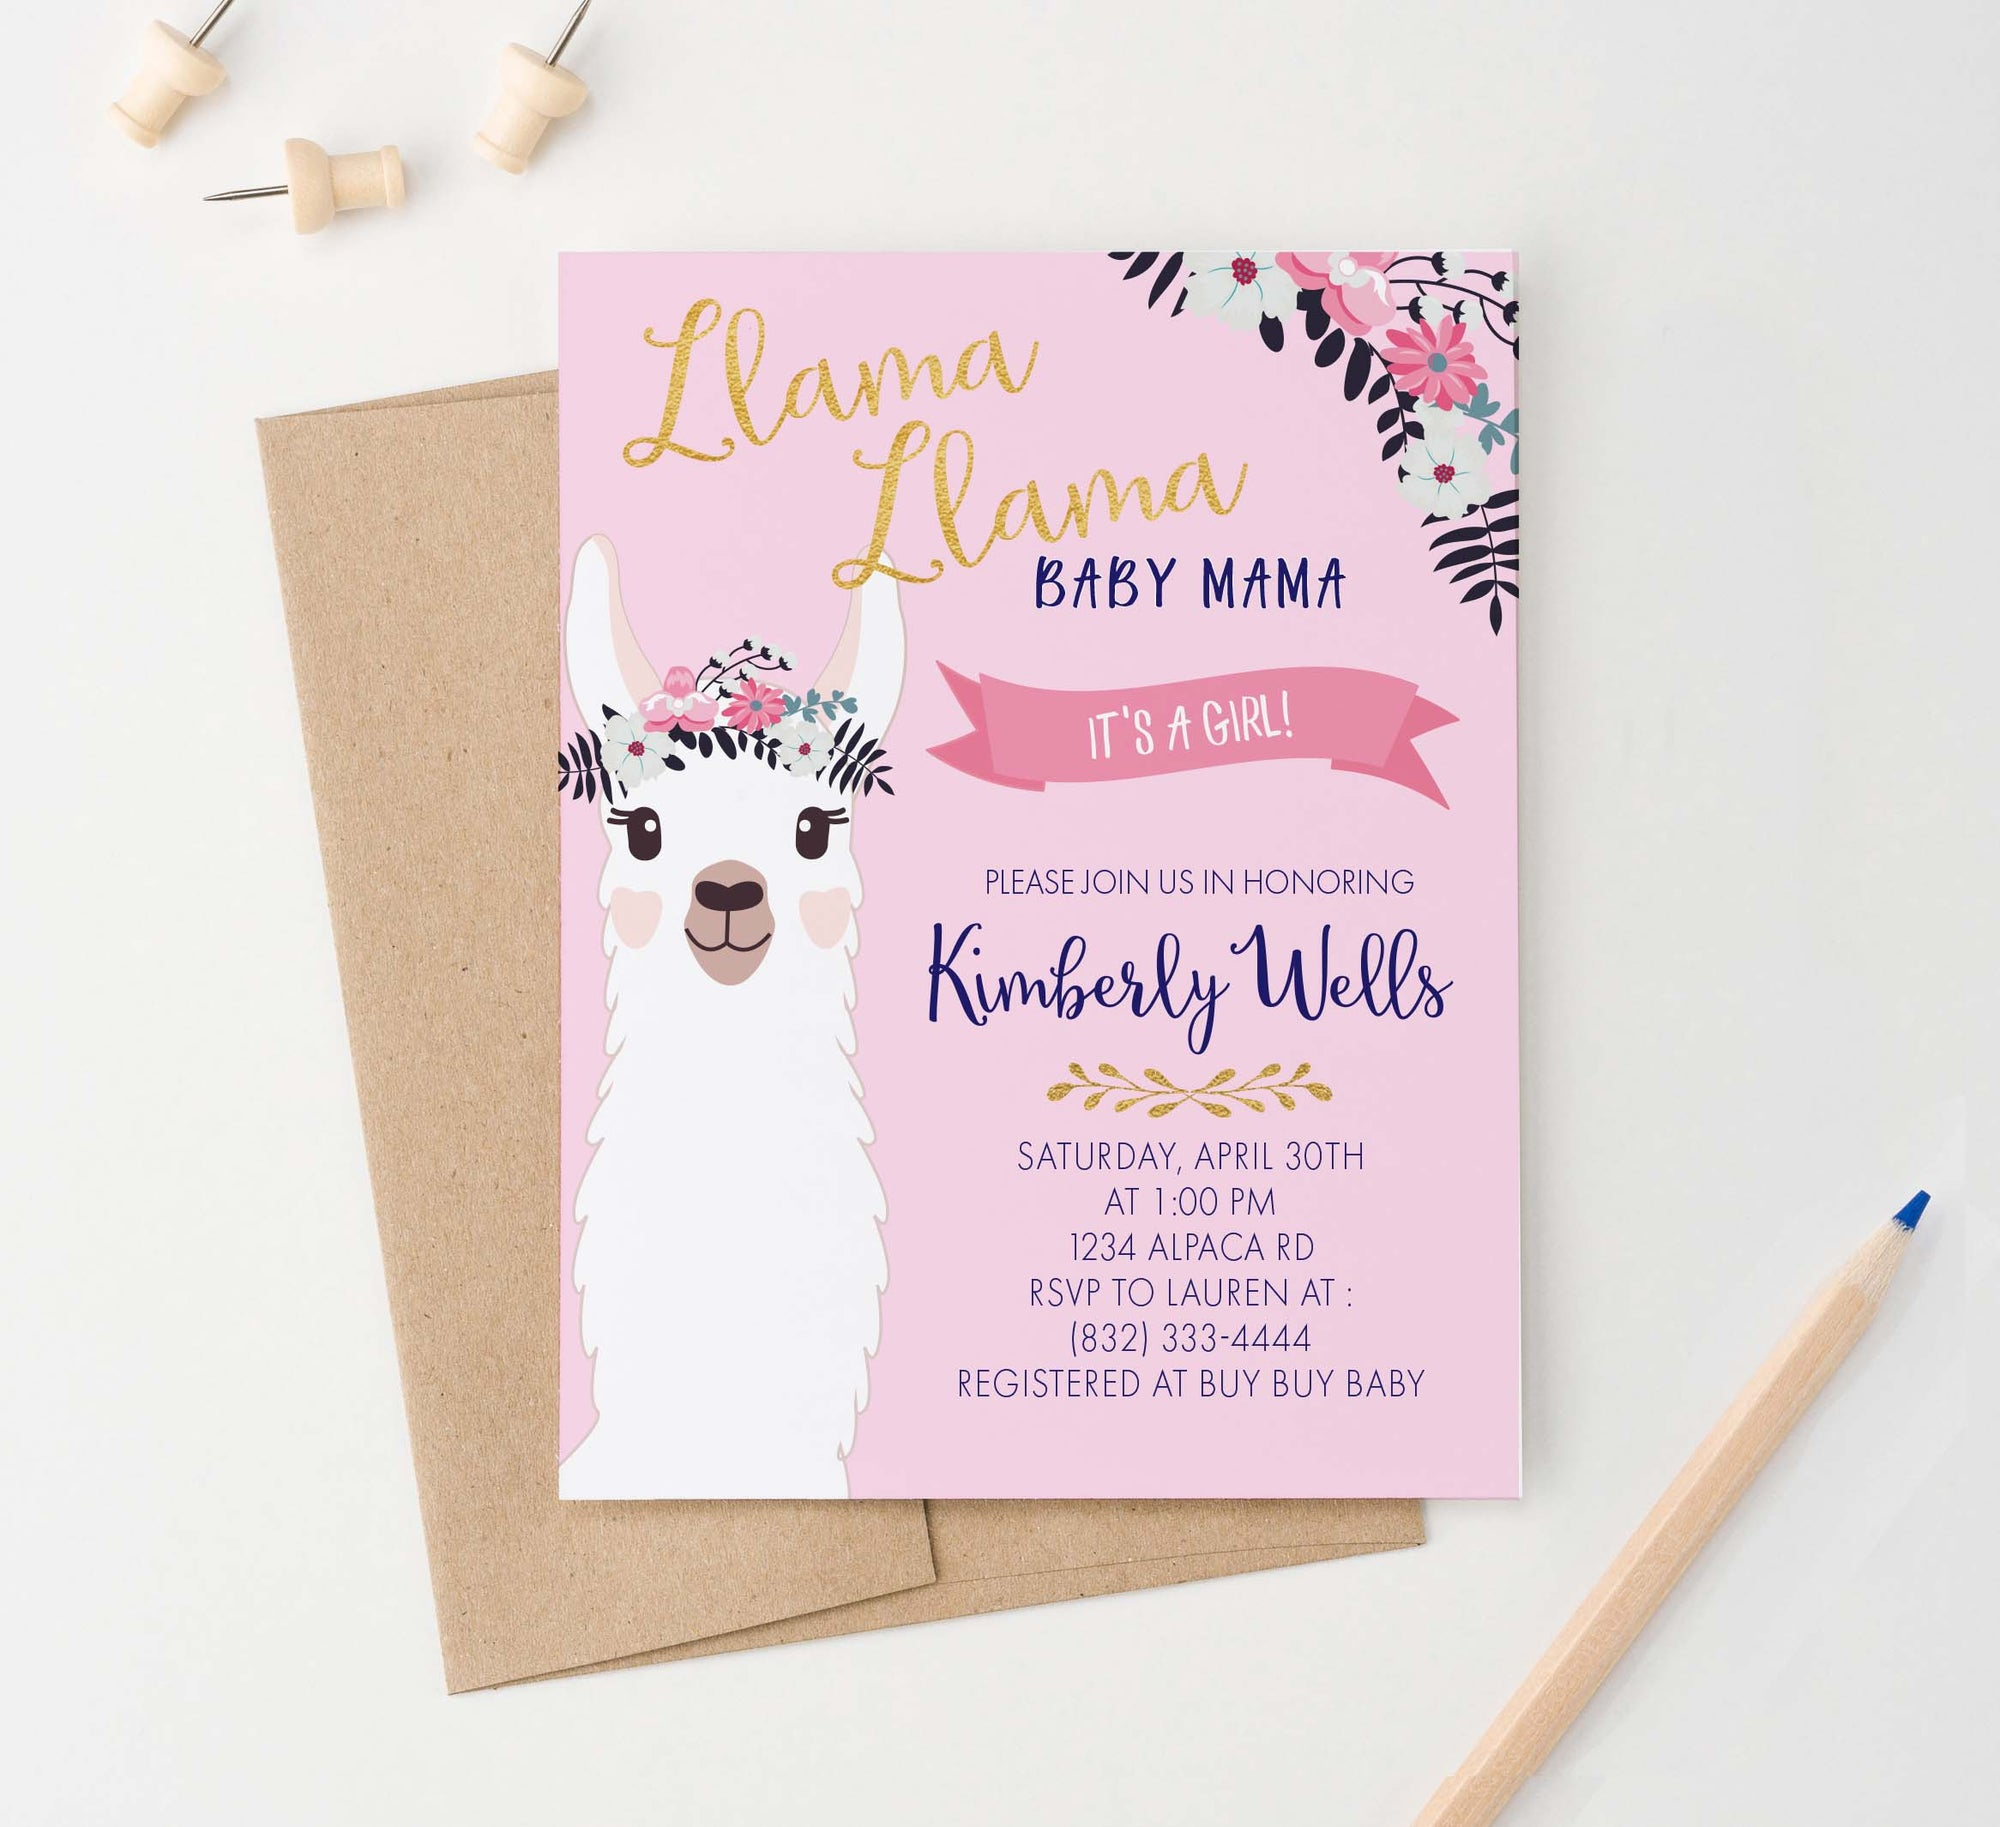 BSI022 llama llama baby shower invitation for girl floral 2